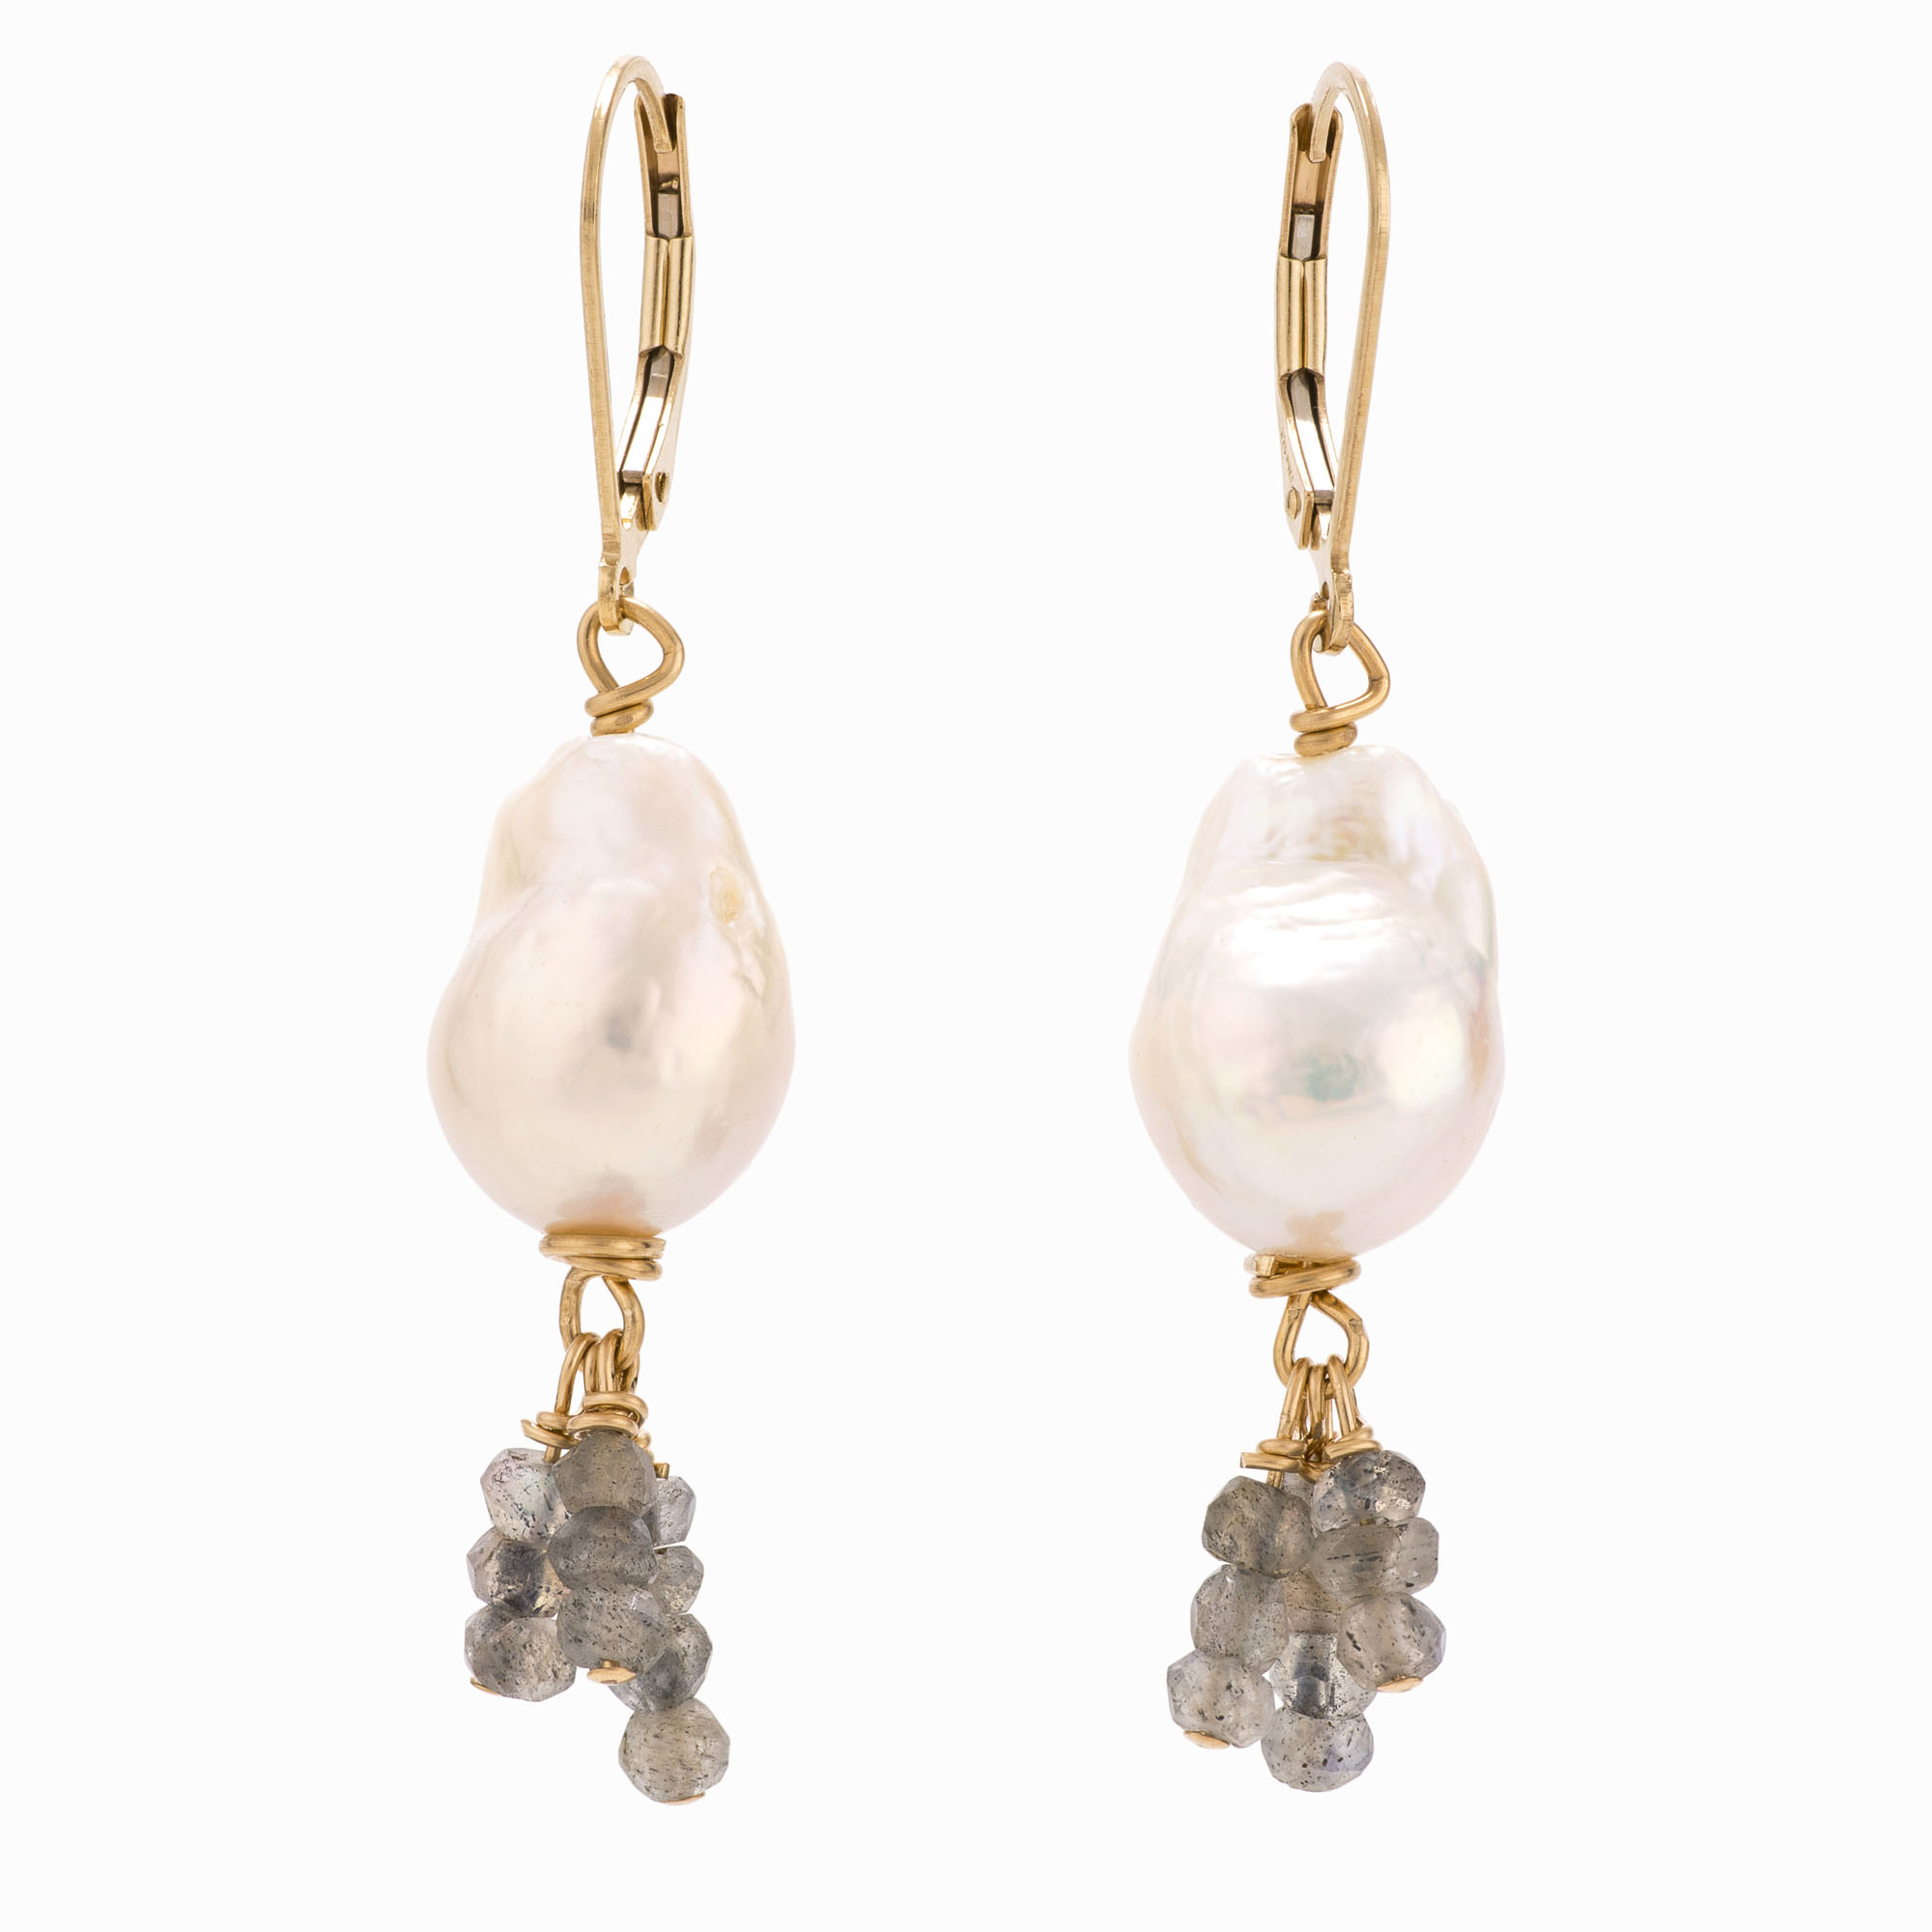 A pair of white pearl earrings with 14k gold-filled backs and labradorite beads.